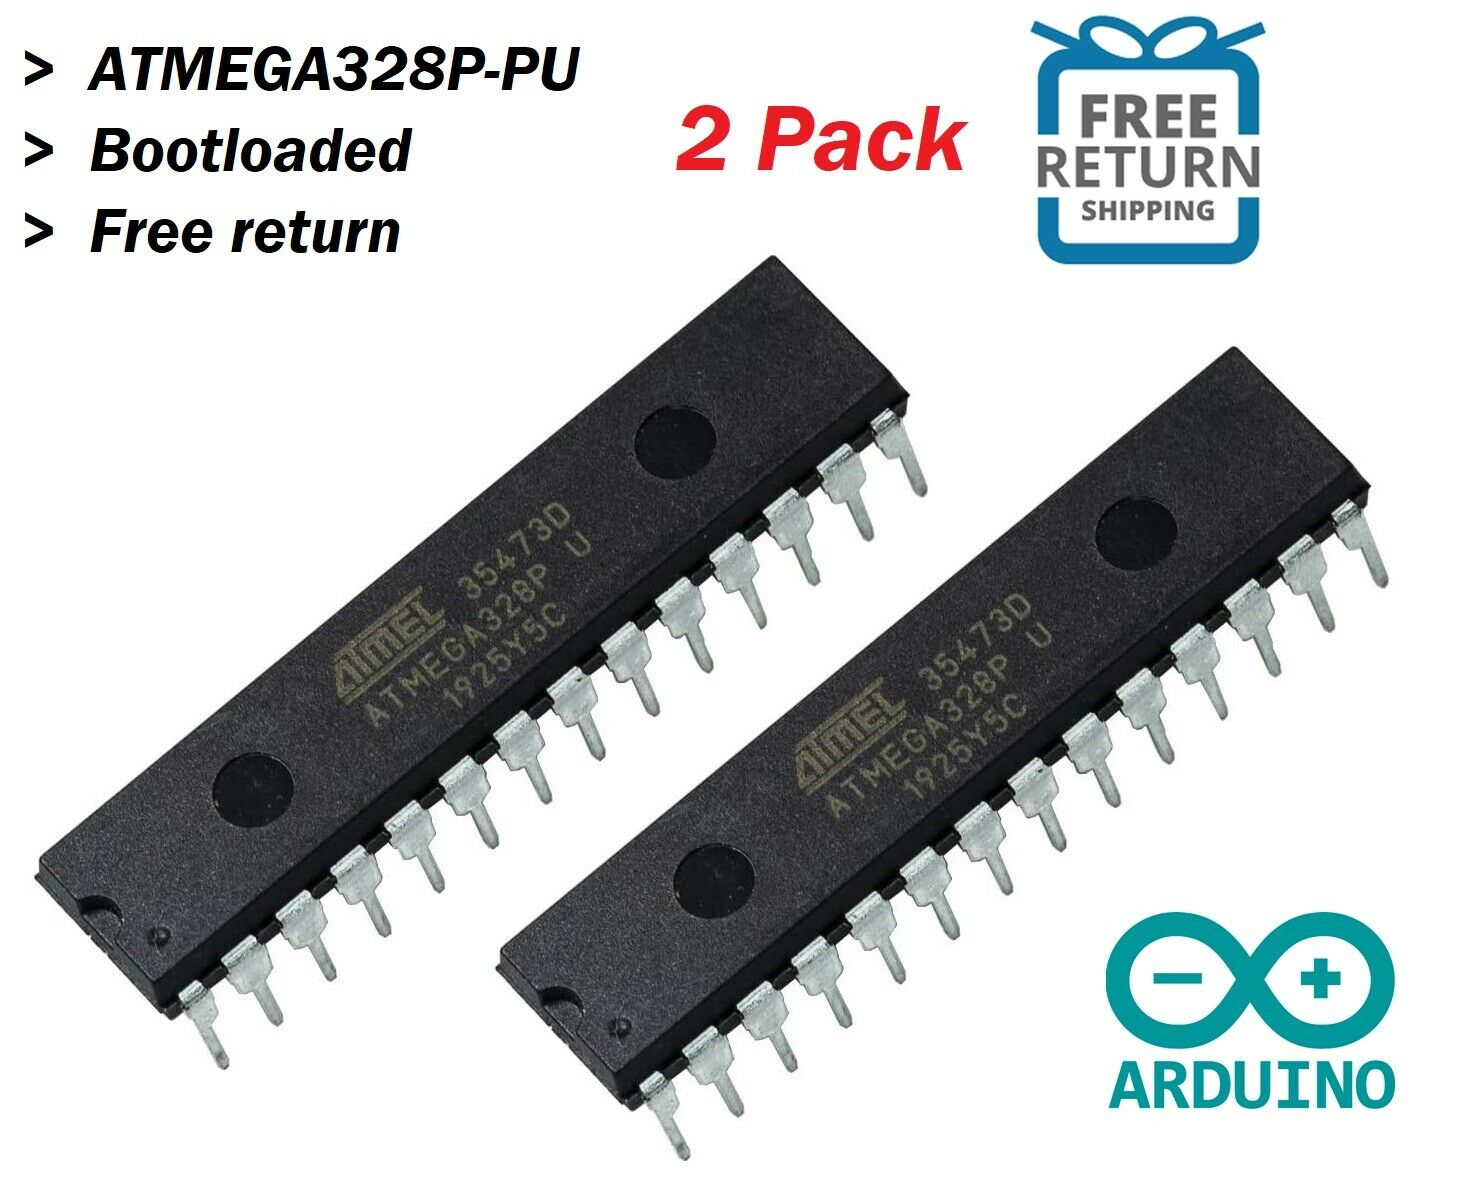 Pack 2 Gratux Atmega328P-PU with Bootloader Bundle with Sockets